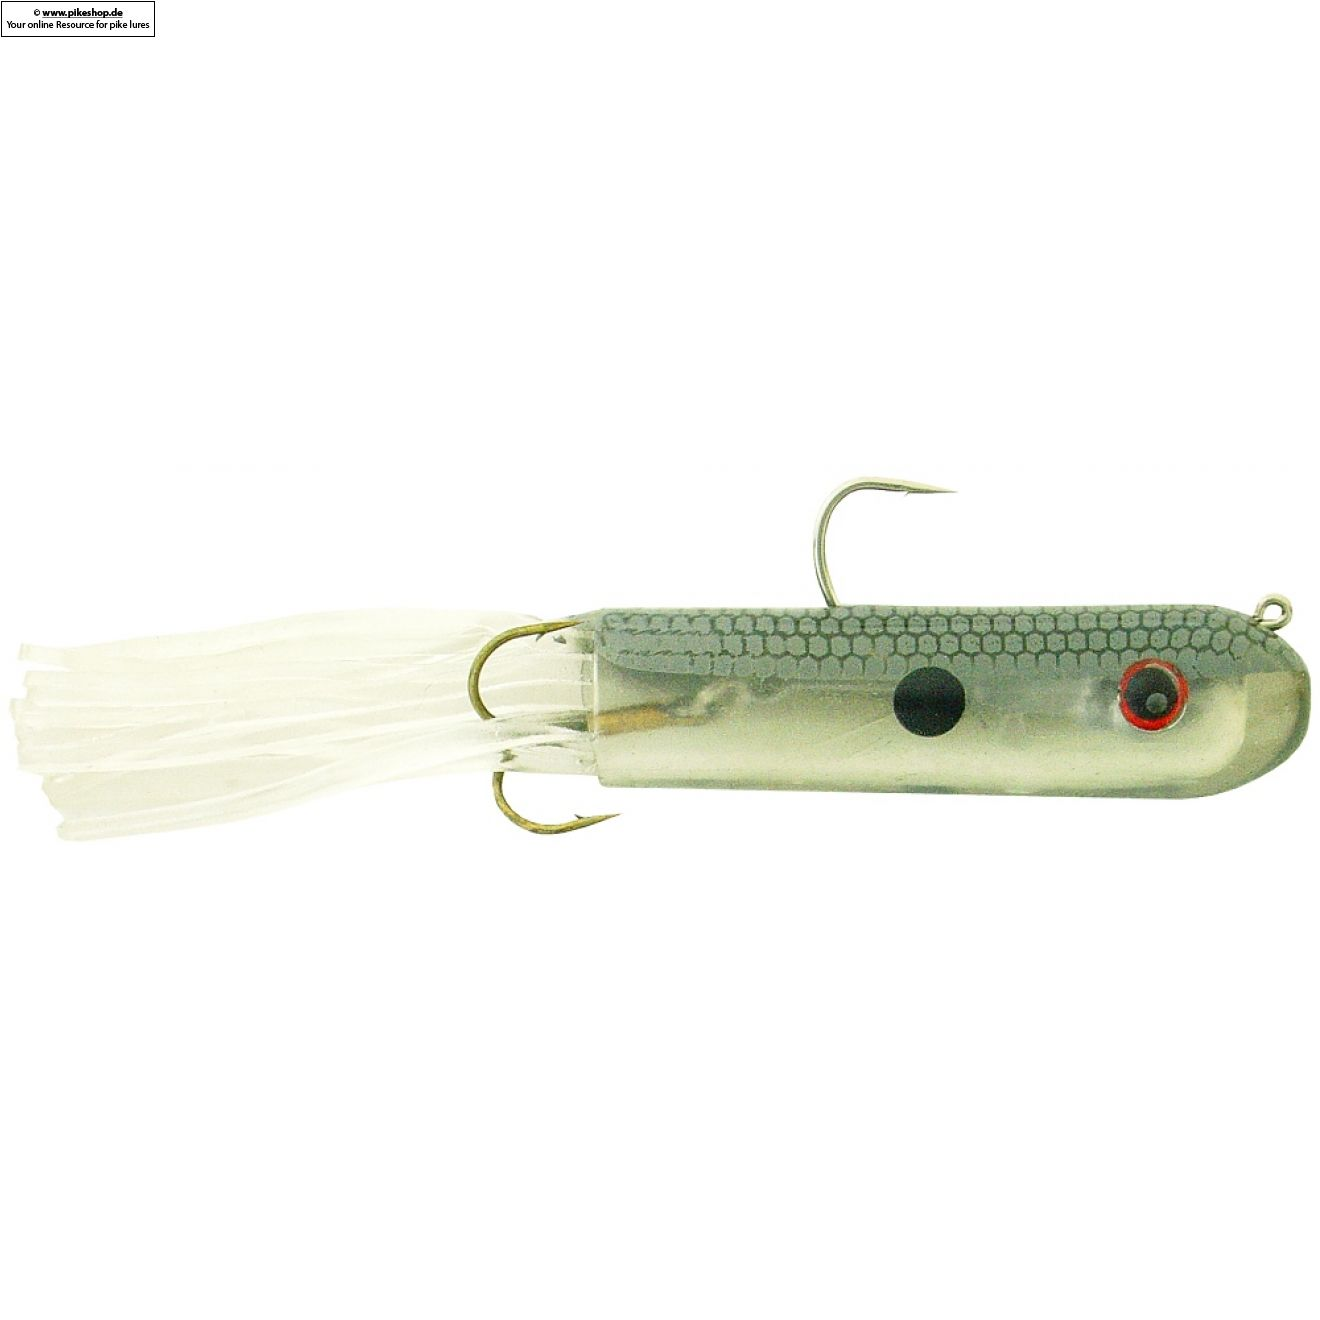 Tube JR - 20cm (8 Zoll) - RS Shad